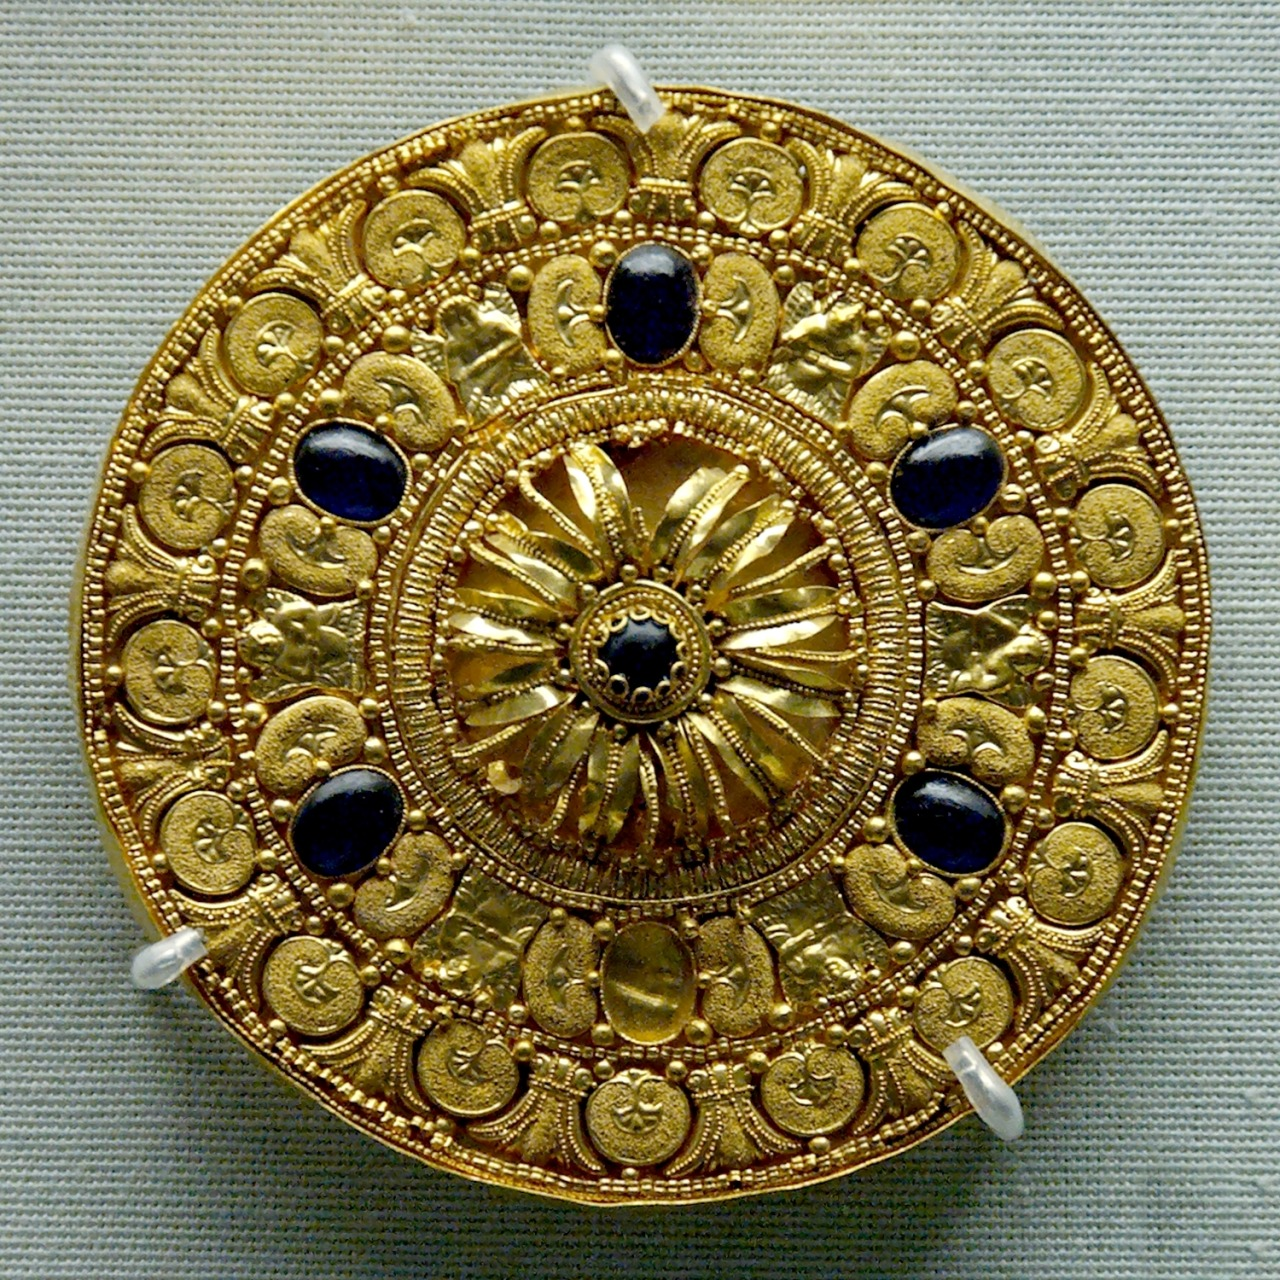 Ear-stud decorated with a rosette surrounded by concentric bands. Gold with vitreous glass paste insets, Etruscan artwork, 530–480 BC. Courtesy & currently located at the British Museum, London. Photo taken by Jastrow